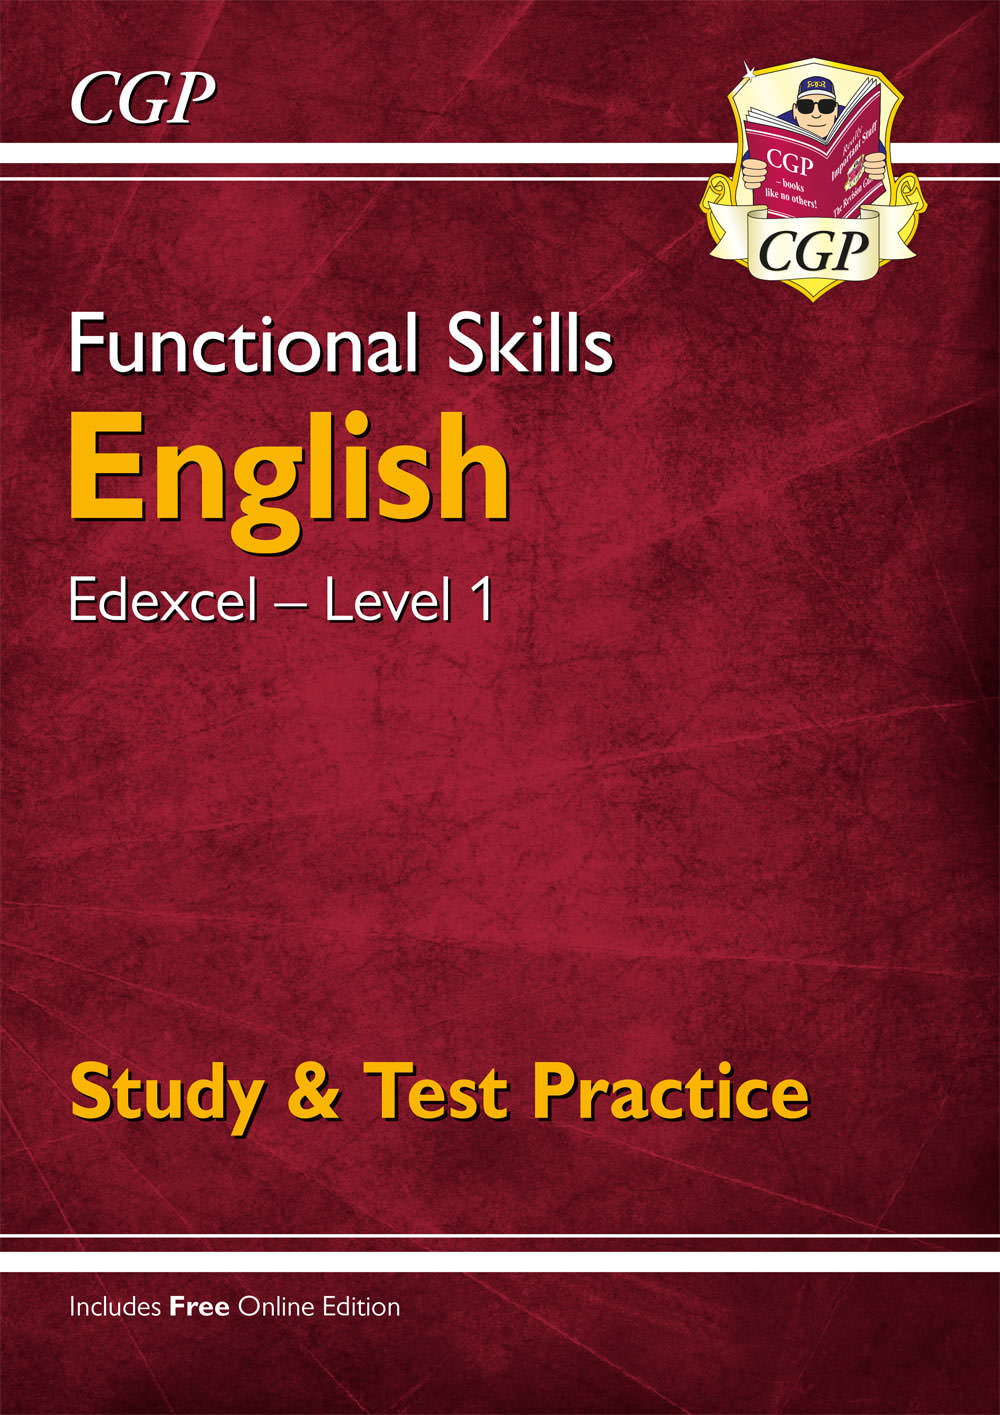 E1ESRA1 - New Functional Skills English: Edexcel Level 1 - Study & Test Practice (for 2019 & beyond)